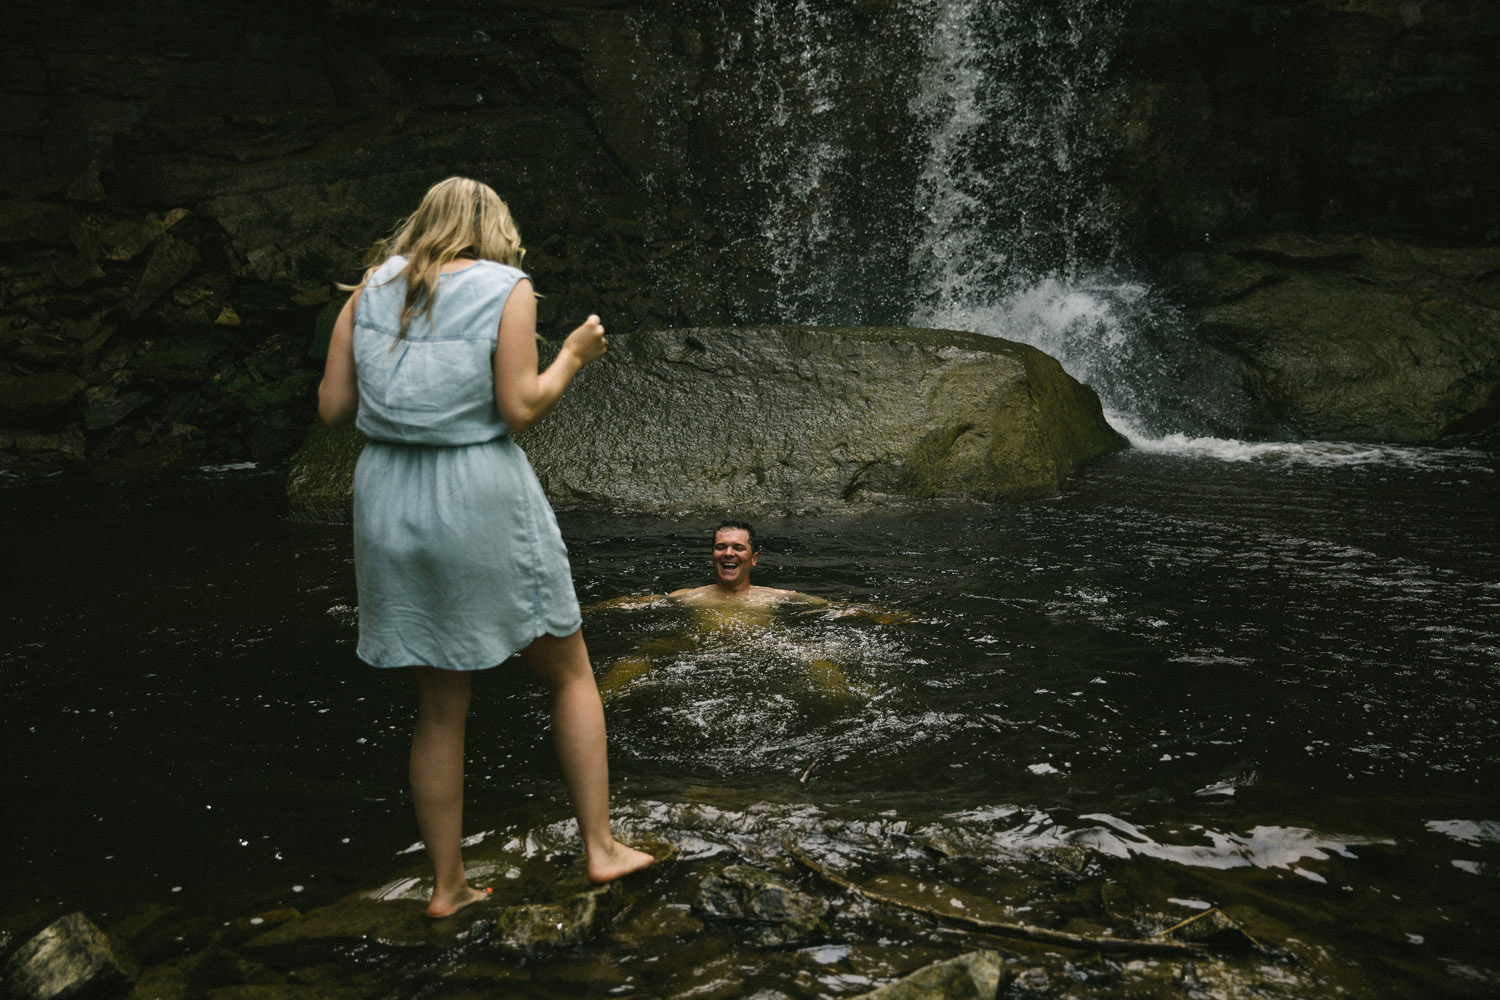 204-WaterfallEngagementSession.jpg